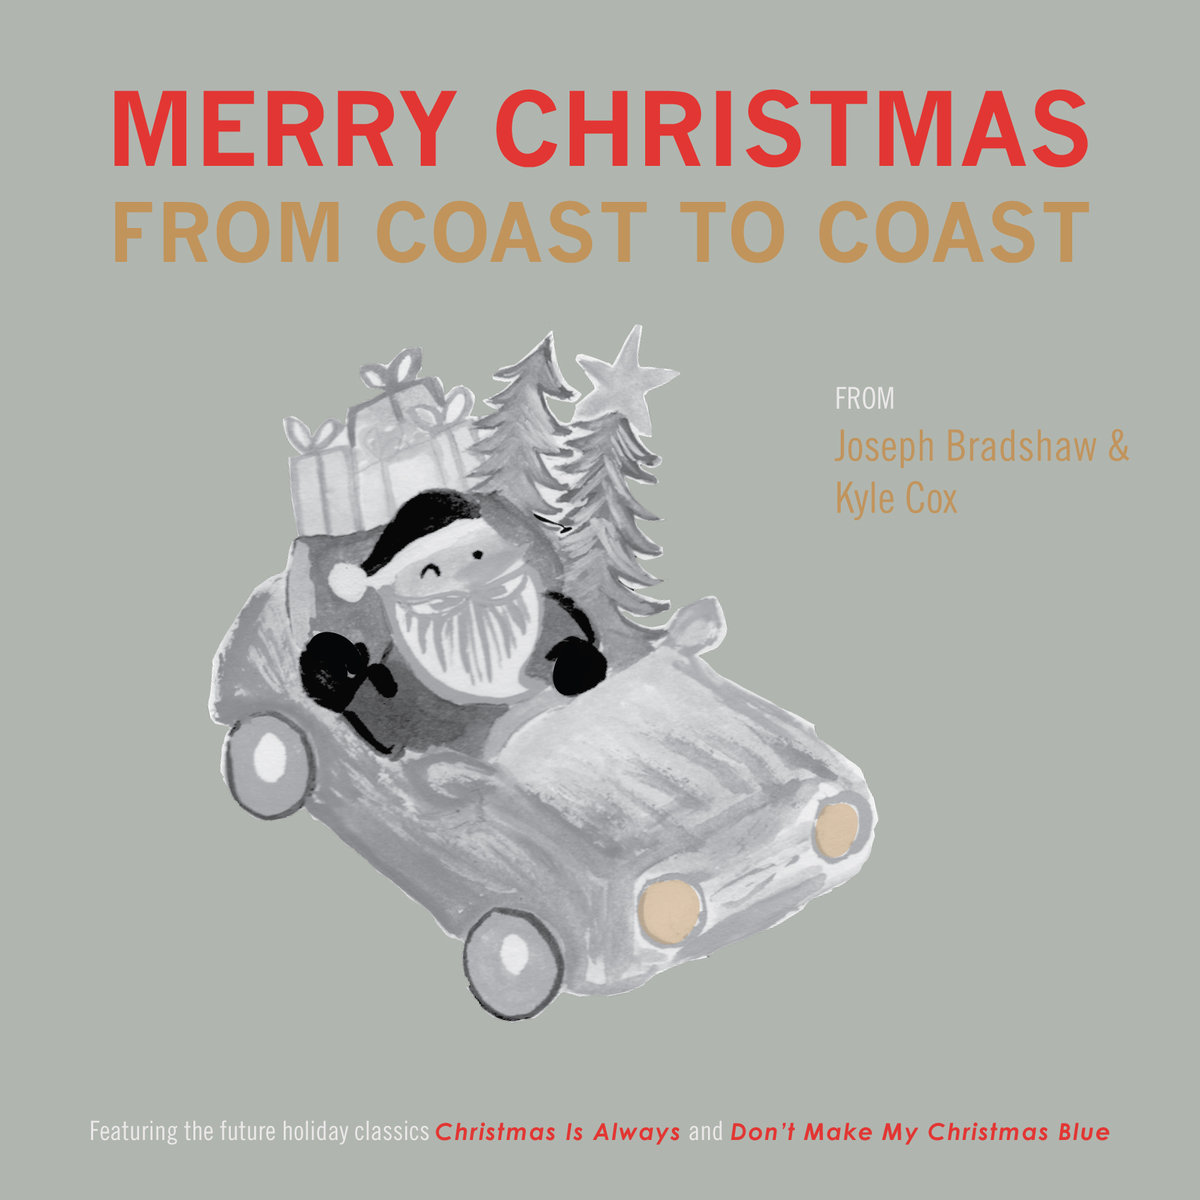 Joseph Bradshaw & Kyle Cox - Merry Christmas from Coast to Coast (2015)